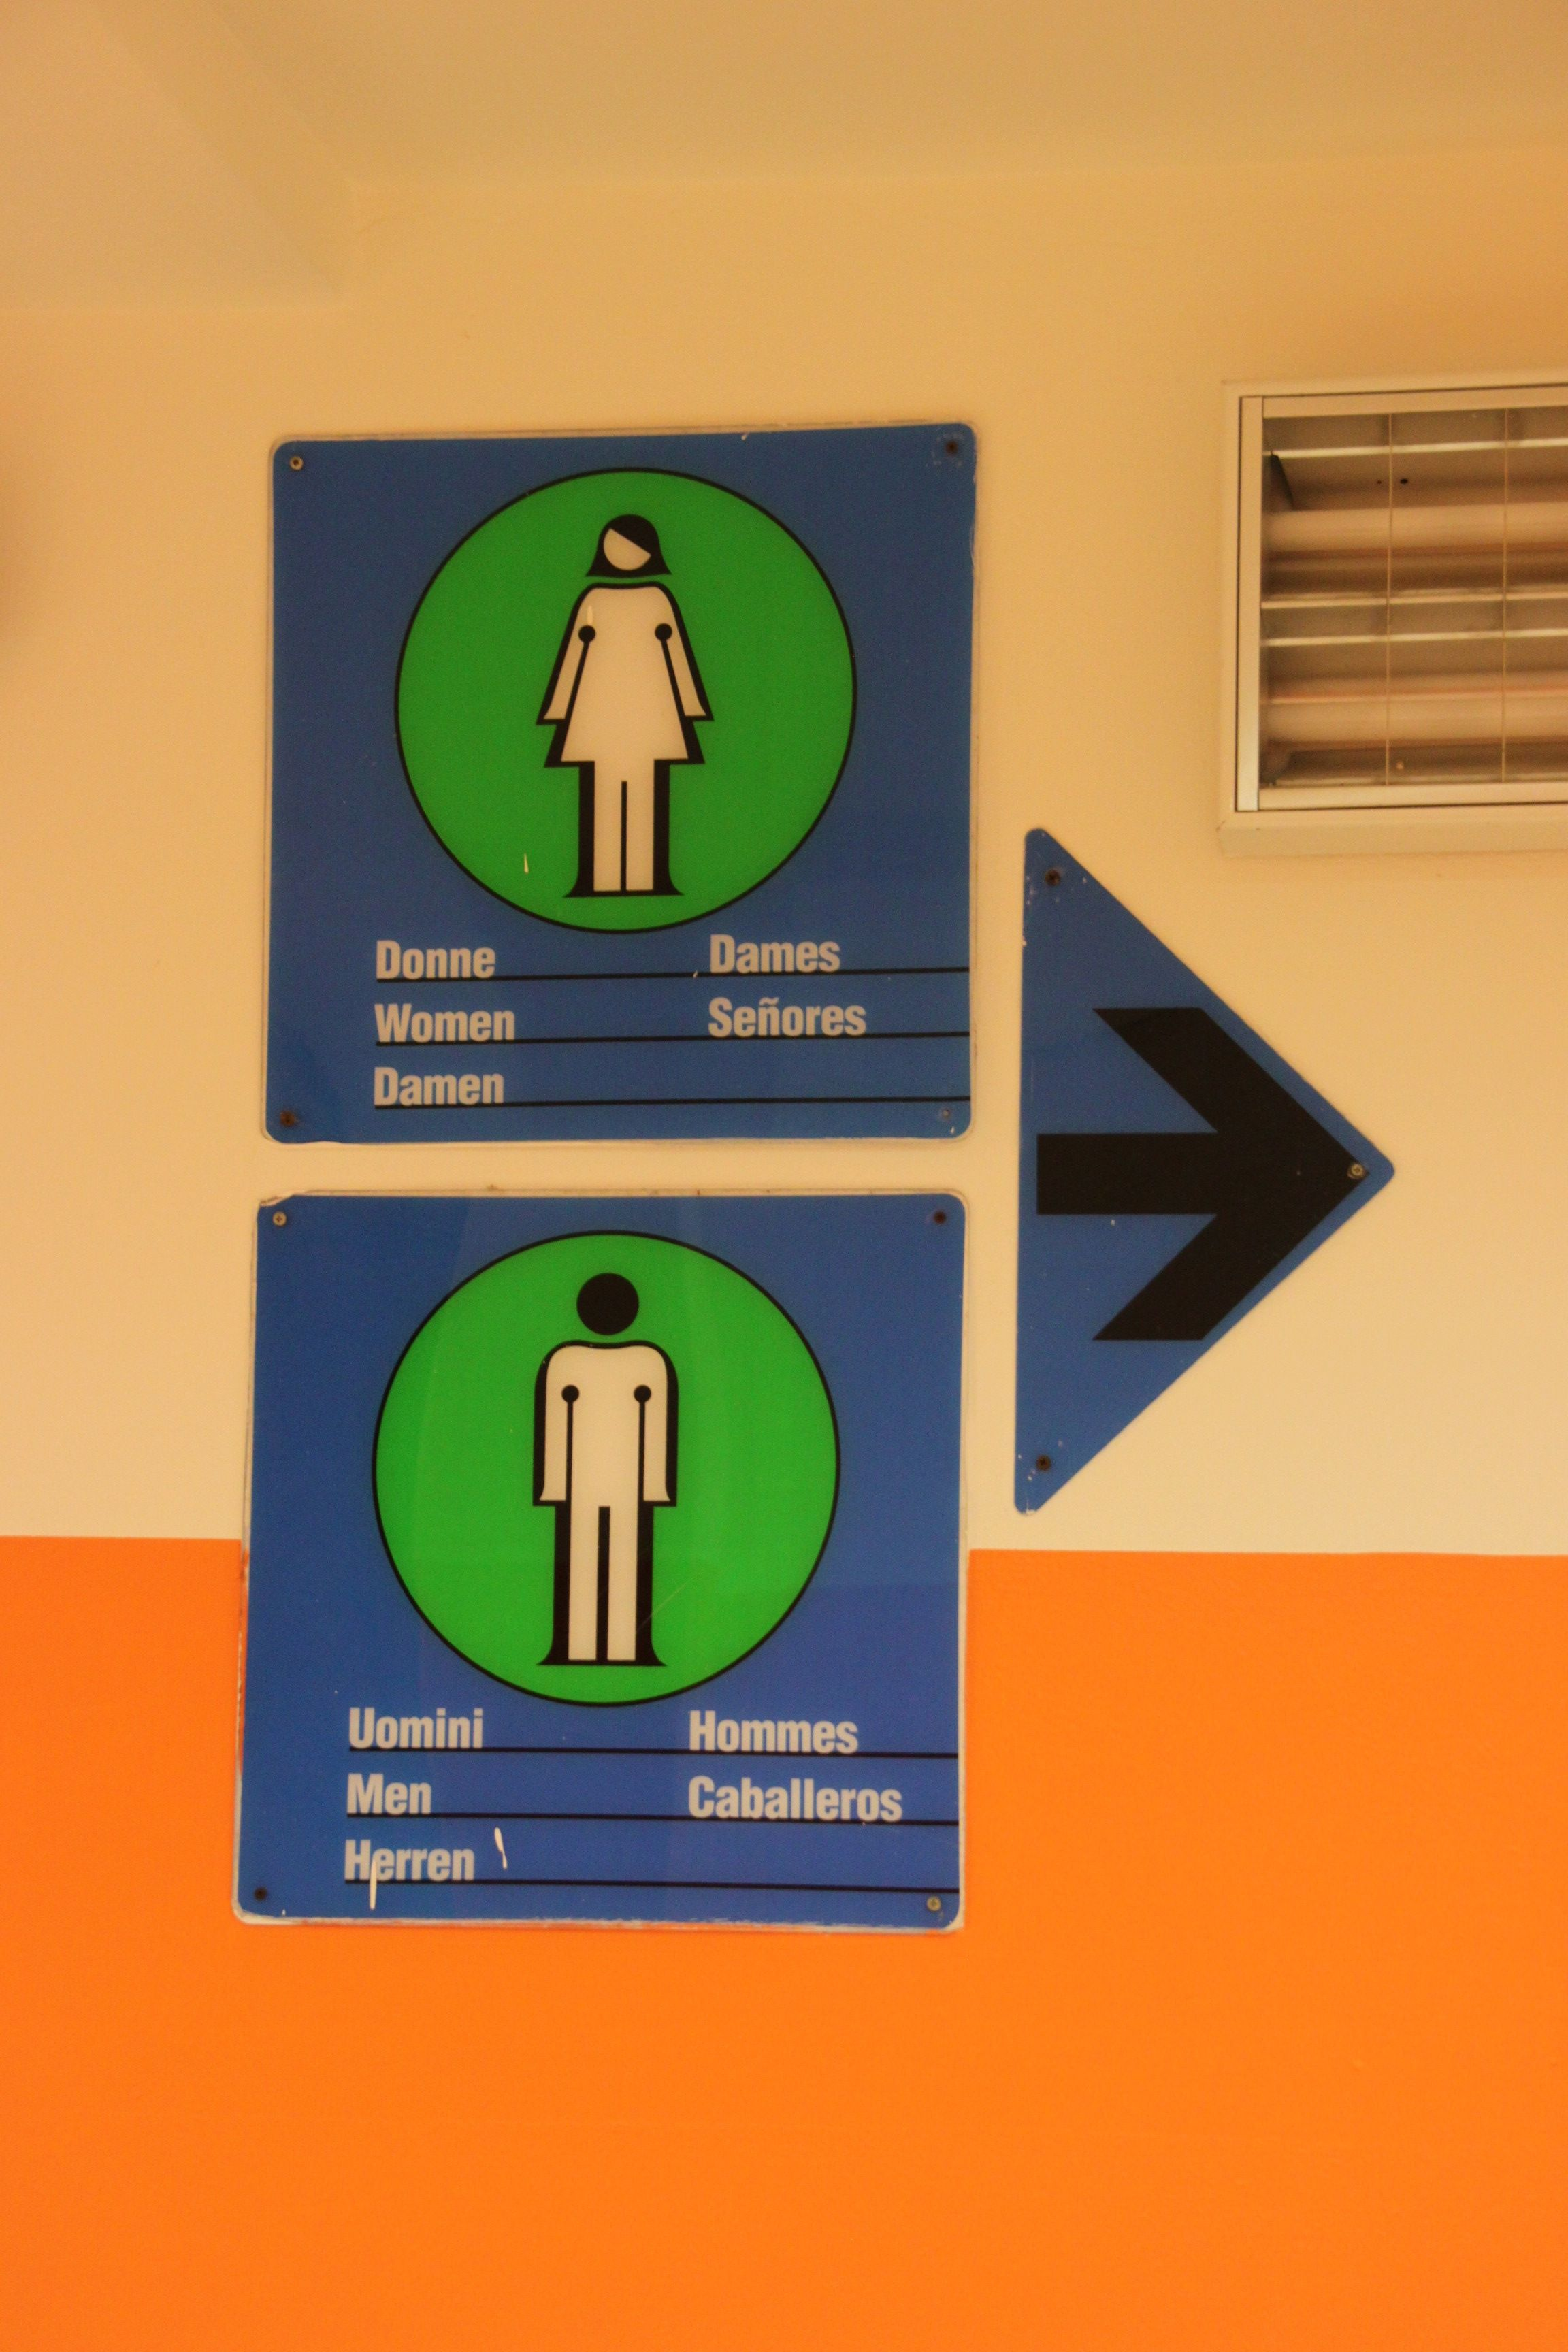 Donne e Uomini - signage pointing to the women's and men's restroom in Venice